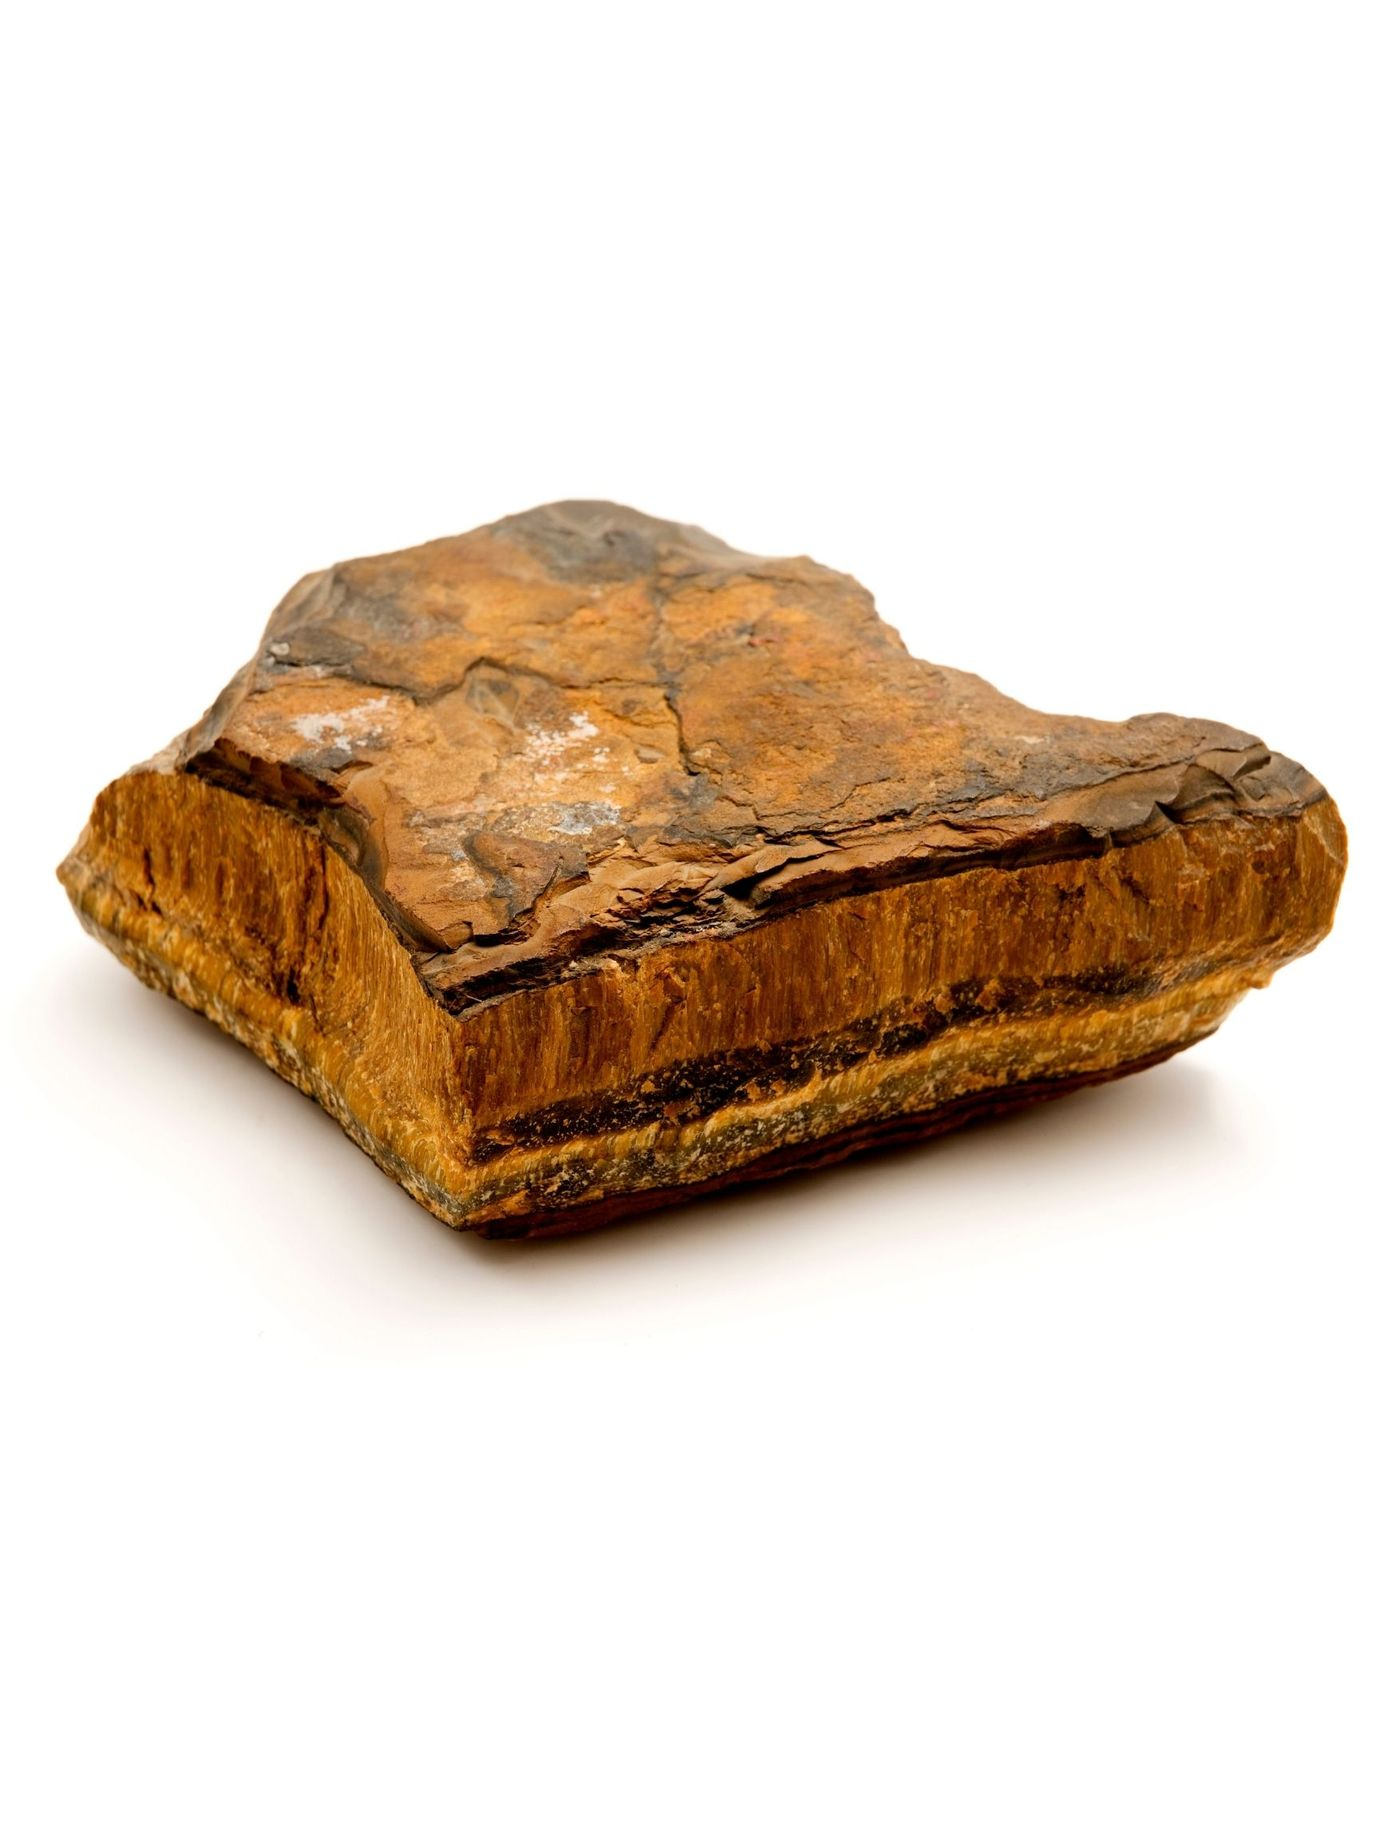 tiger's eye stock image.jpg